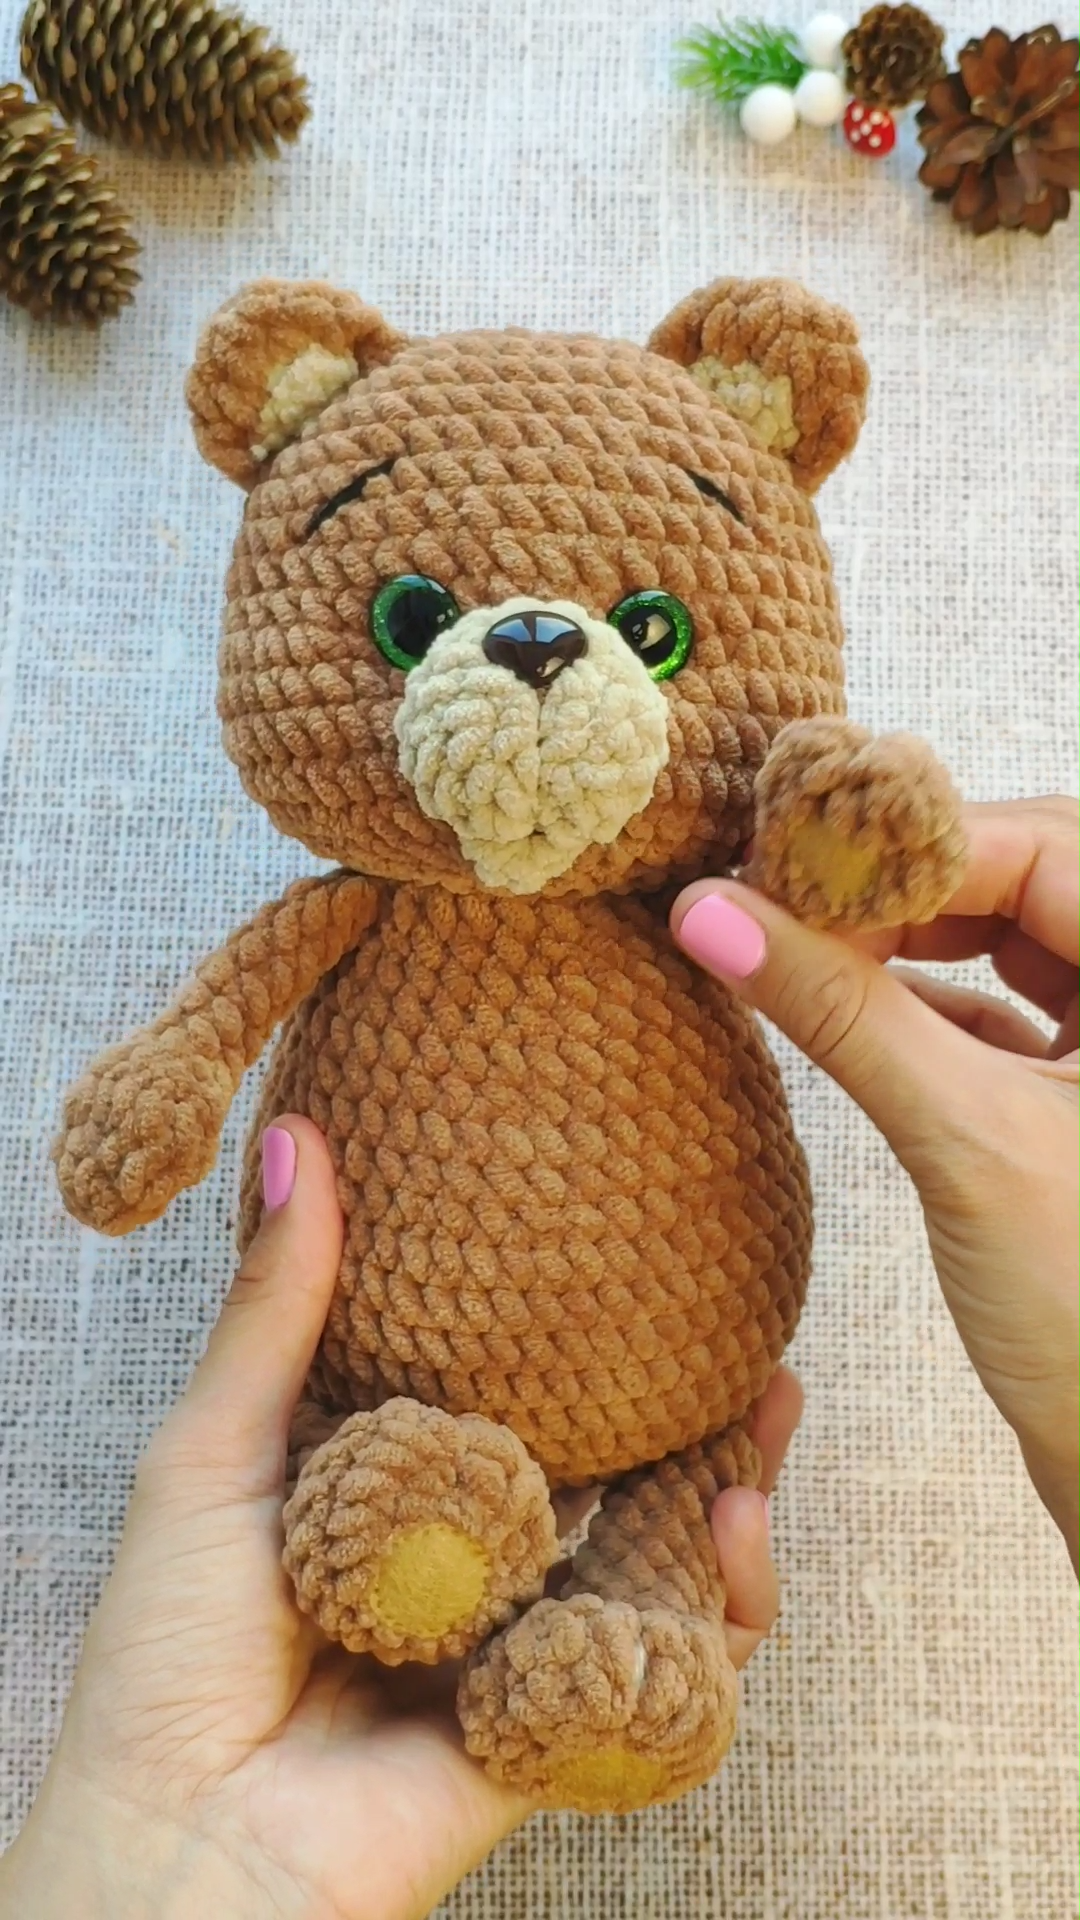 CROCHET TEDDY BEAR pattern - Amigurumi bear toy pattern - Plush Bear doll #babyteddybear